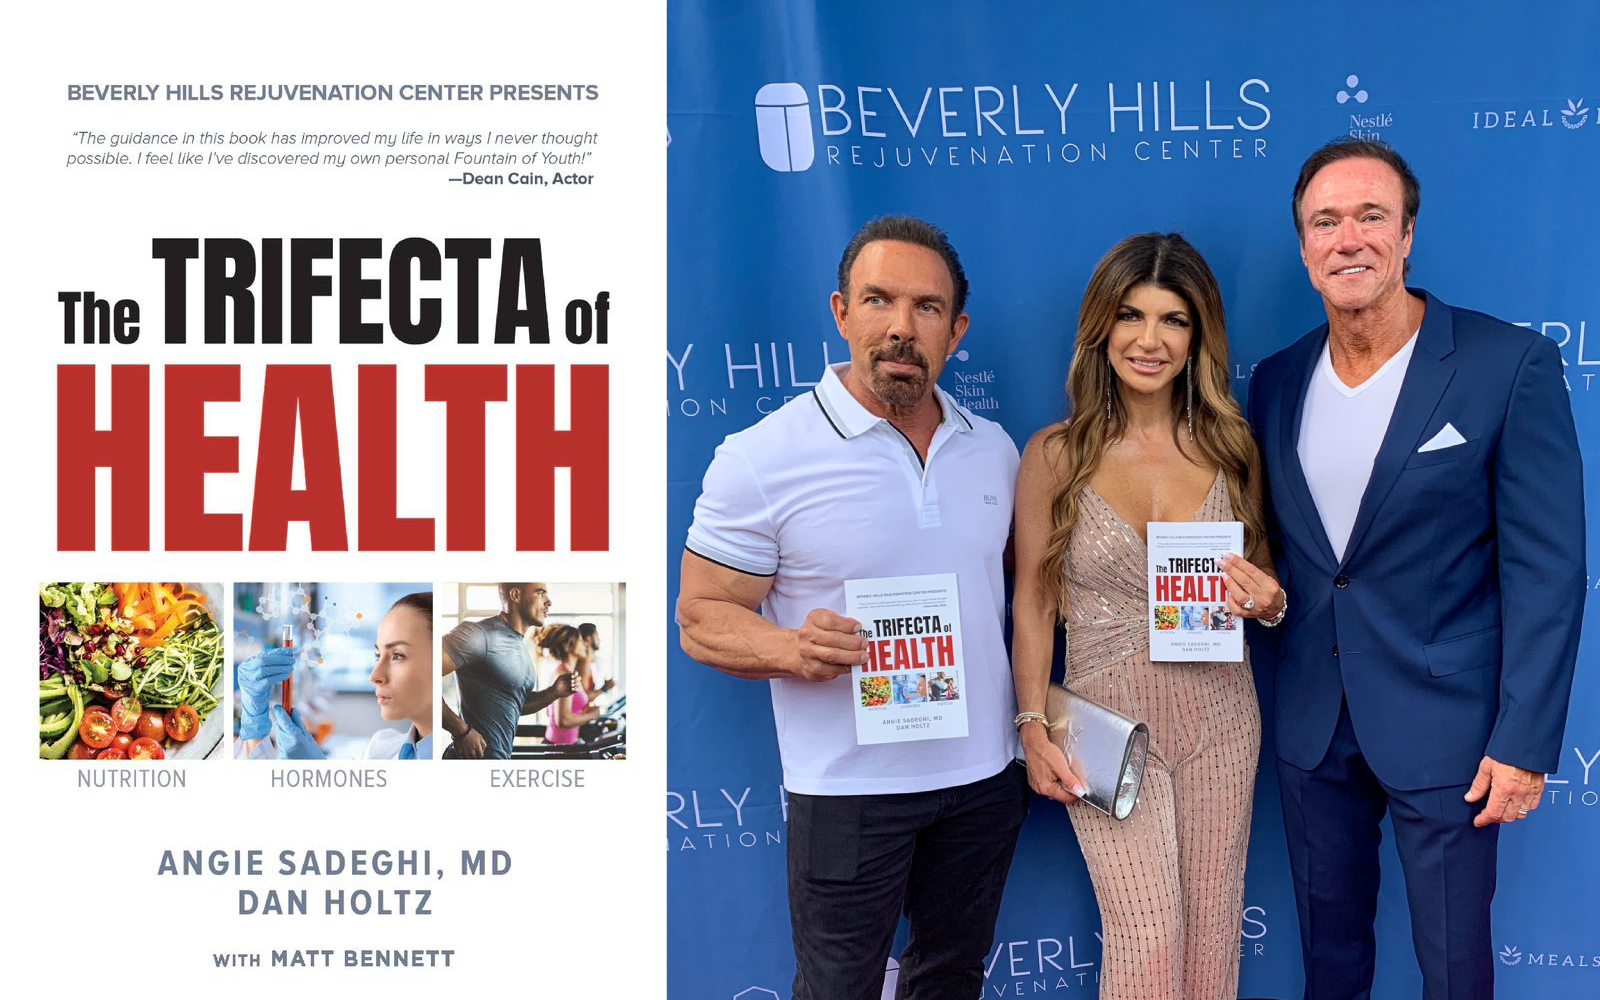 The Triffecta of Health Book; Dan Holtz, Angie Sadeghi MD, Devon Haman